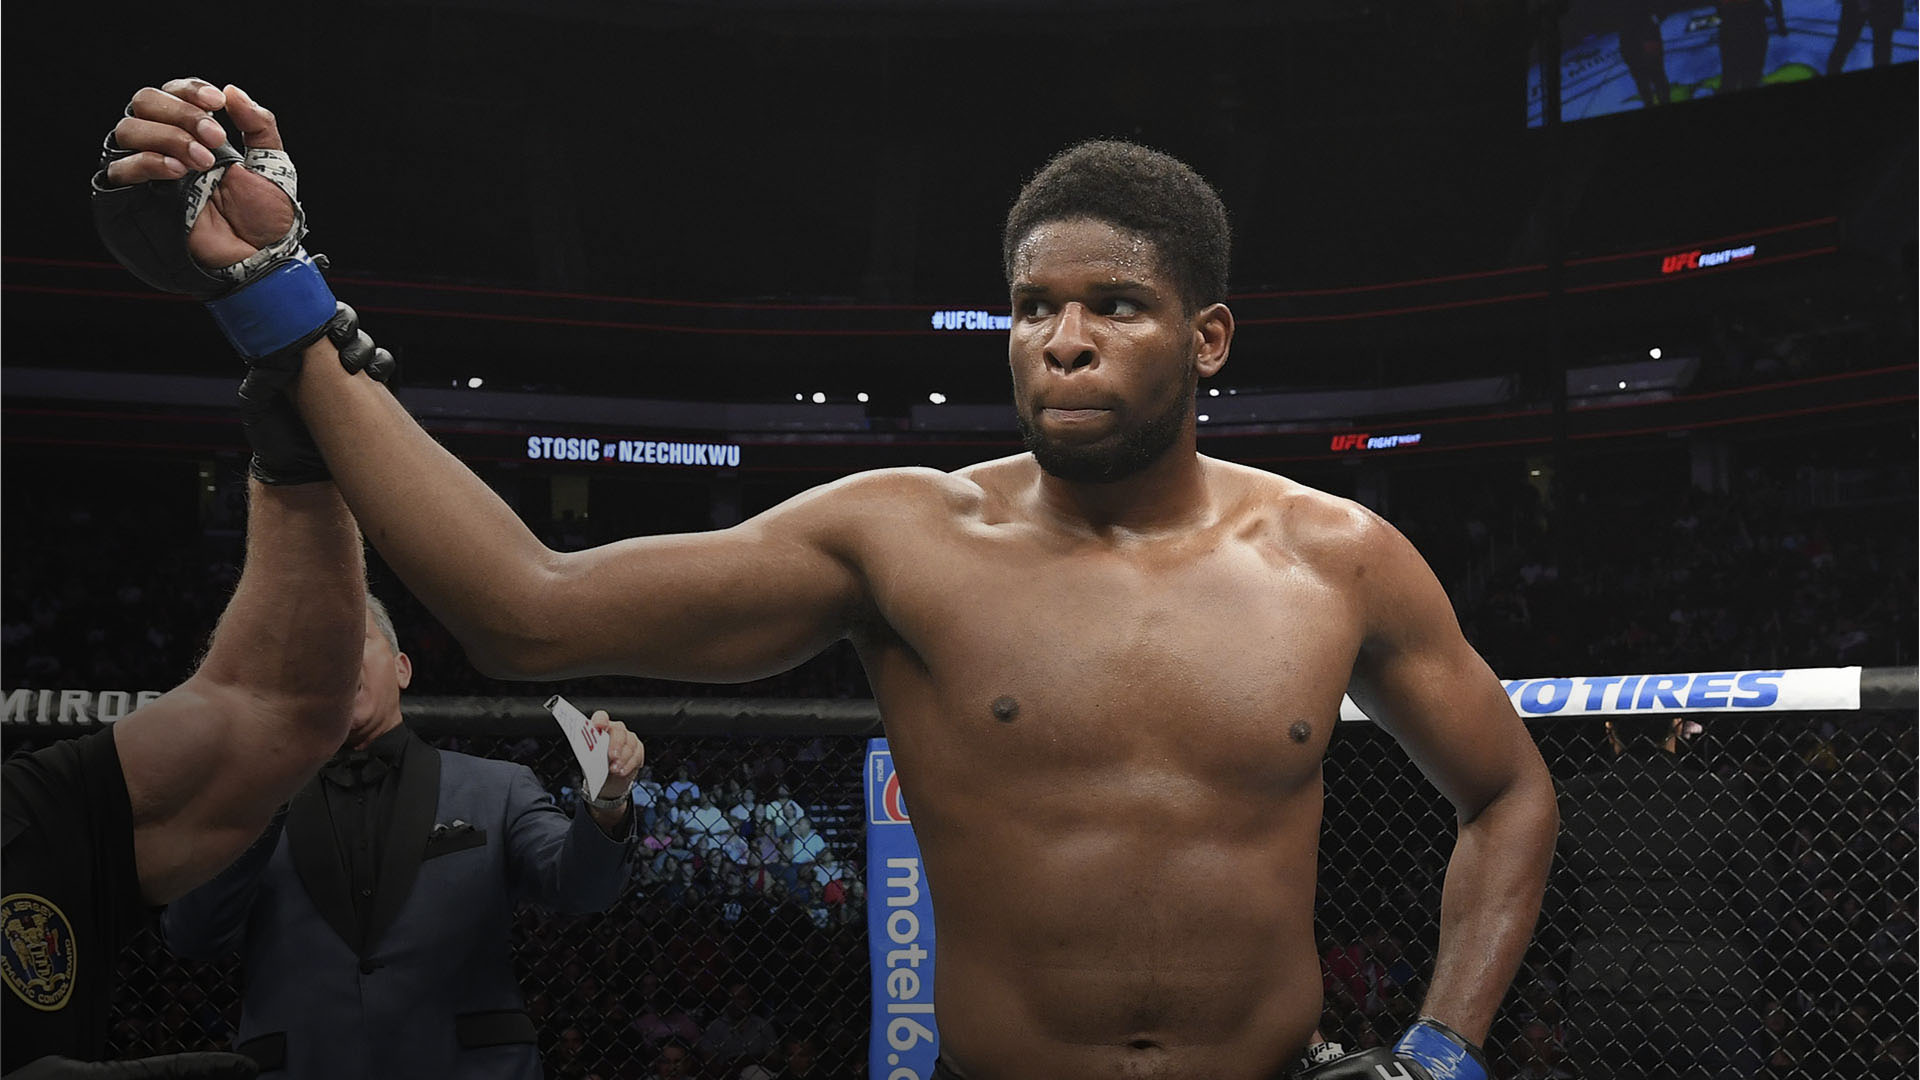 Kennedy Nzechukwu celebrates his victory over Darko Stosic of Serbia in their light heavyweight bout during the UFC Fight Night event at the Prudential Center on August 3, 2019 in Newark, New Jersey. (Photo by Josh Hedges/Zuffa LLC)